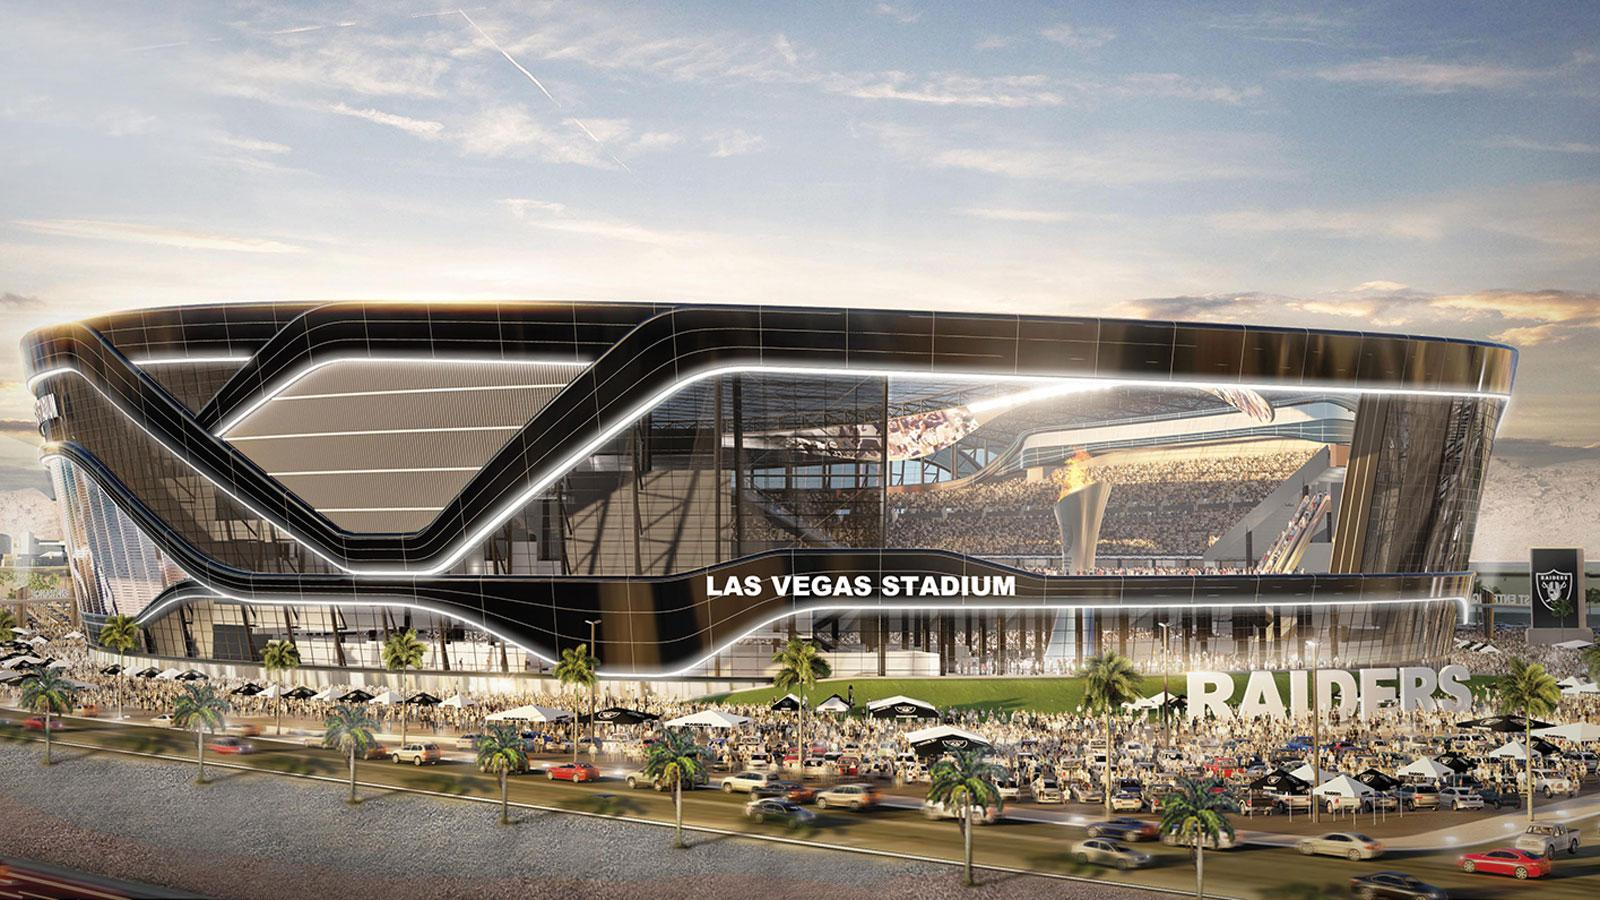 Details are scant for Las Vegas Stadium, soon to be the Raiders' home, but expect a glass dome roof.